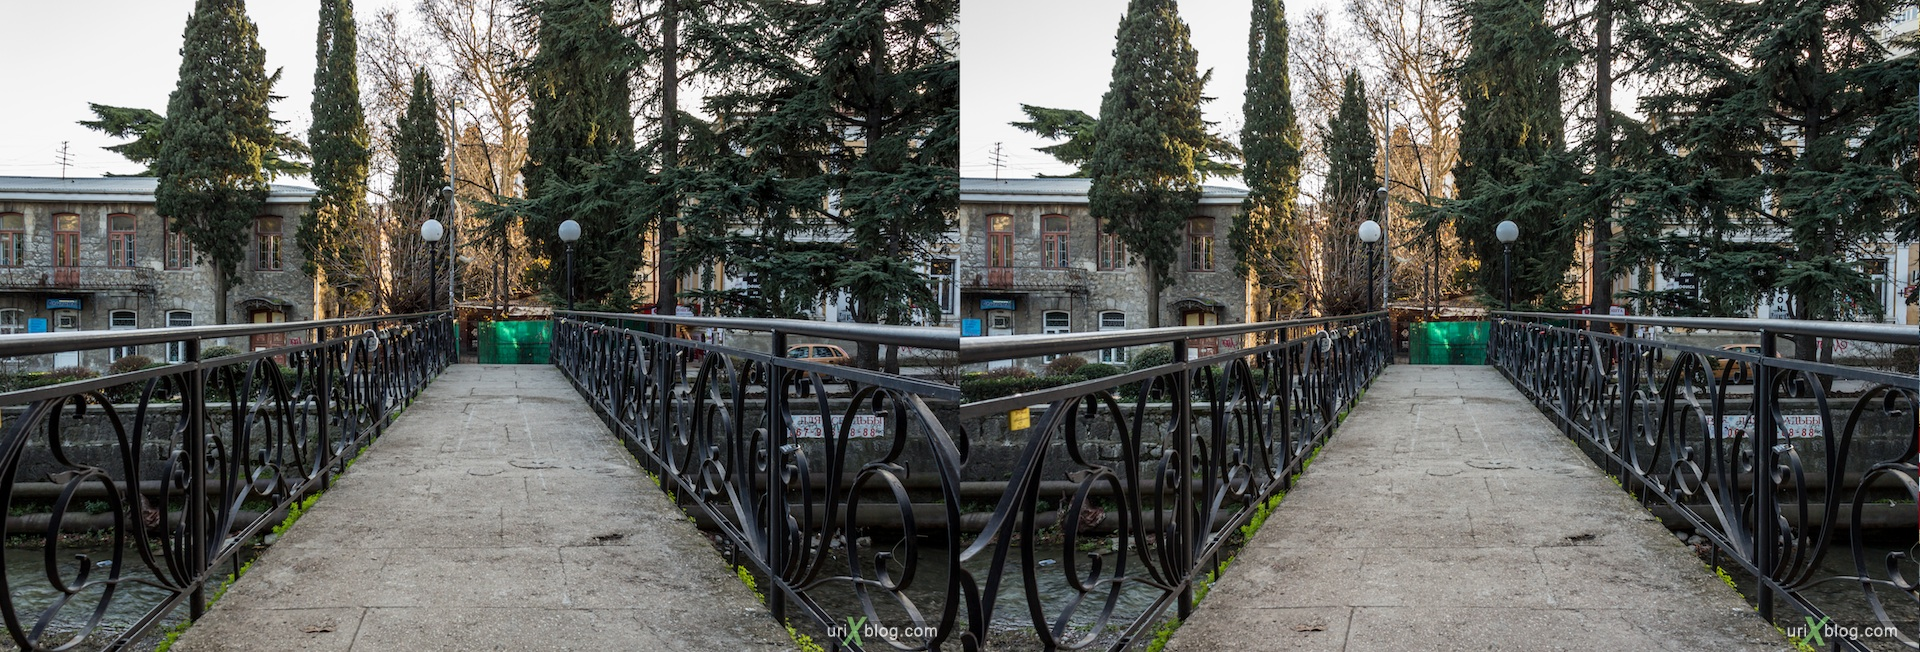 2012, bridge, river, Pushkinskaya street, Gogol street, Yalta, evening, coast city, Crimea, Ukraine, 3D, stereo pair, cross-eyed, crossview, cross view stereo pair, stereoscopic